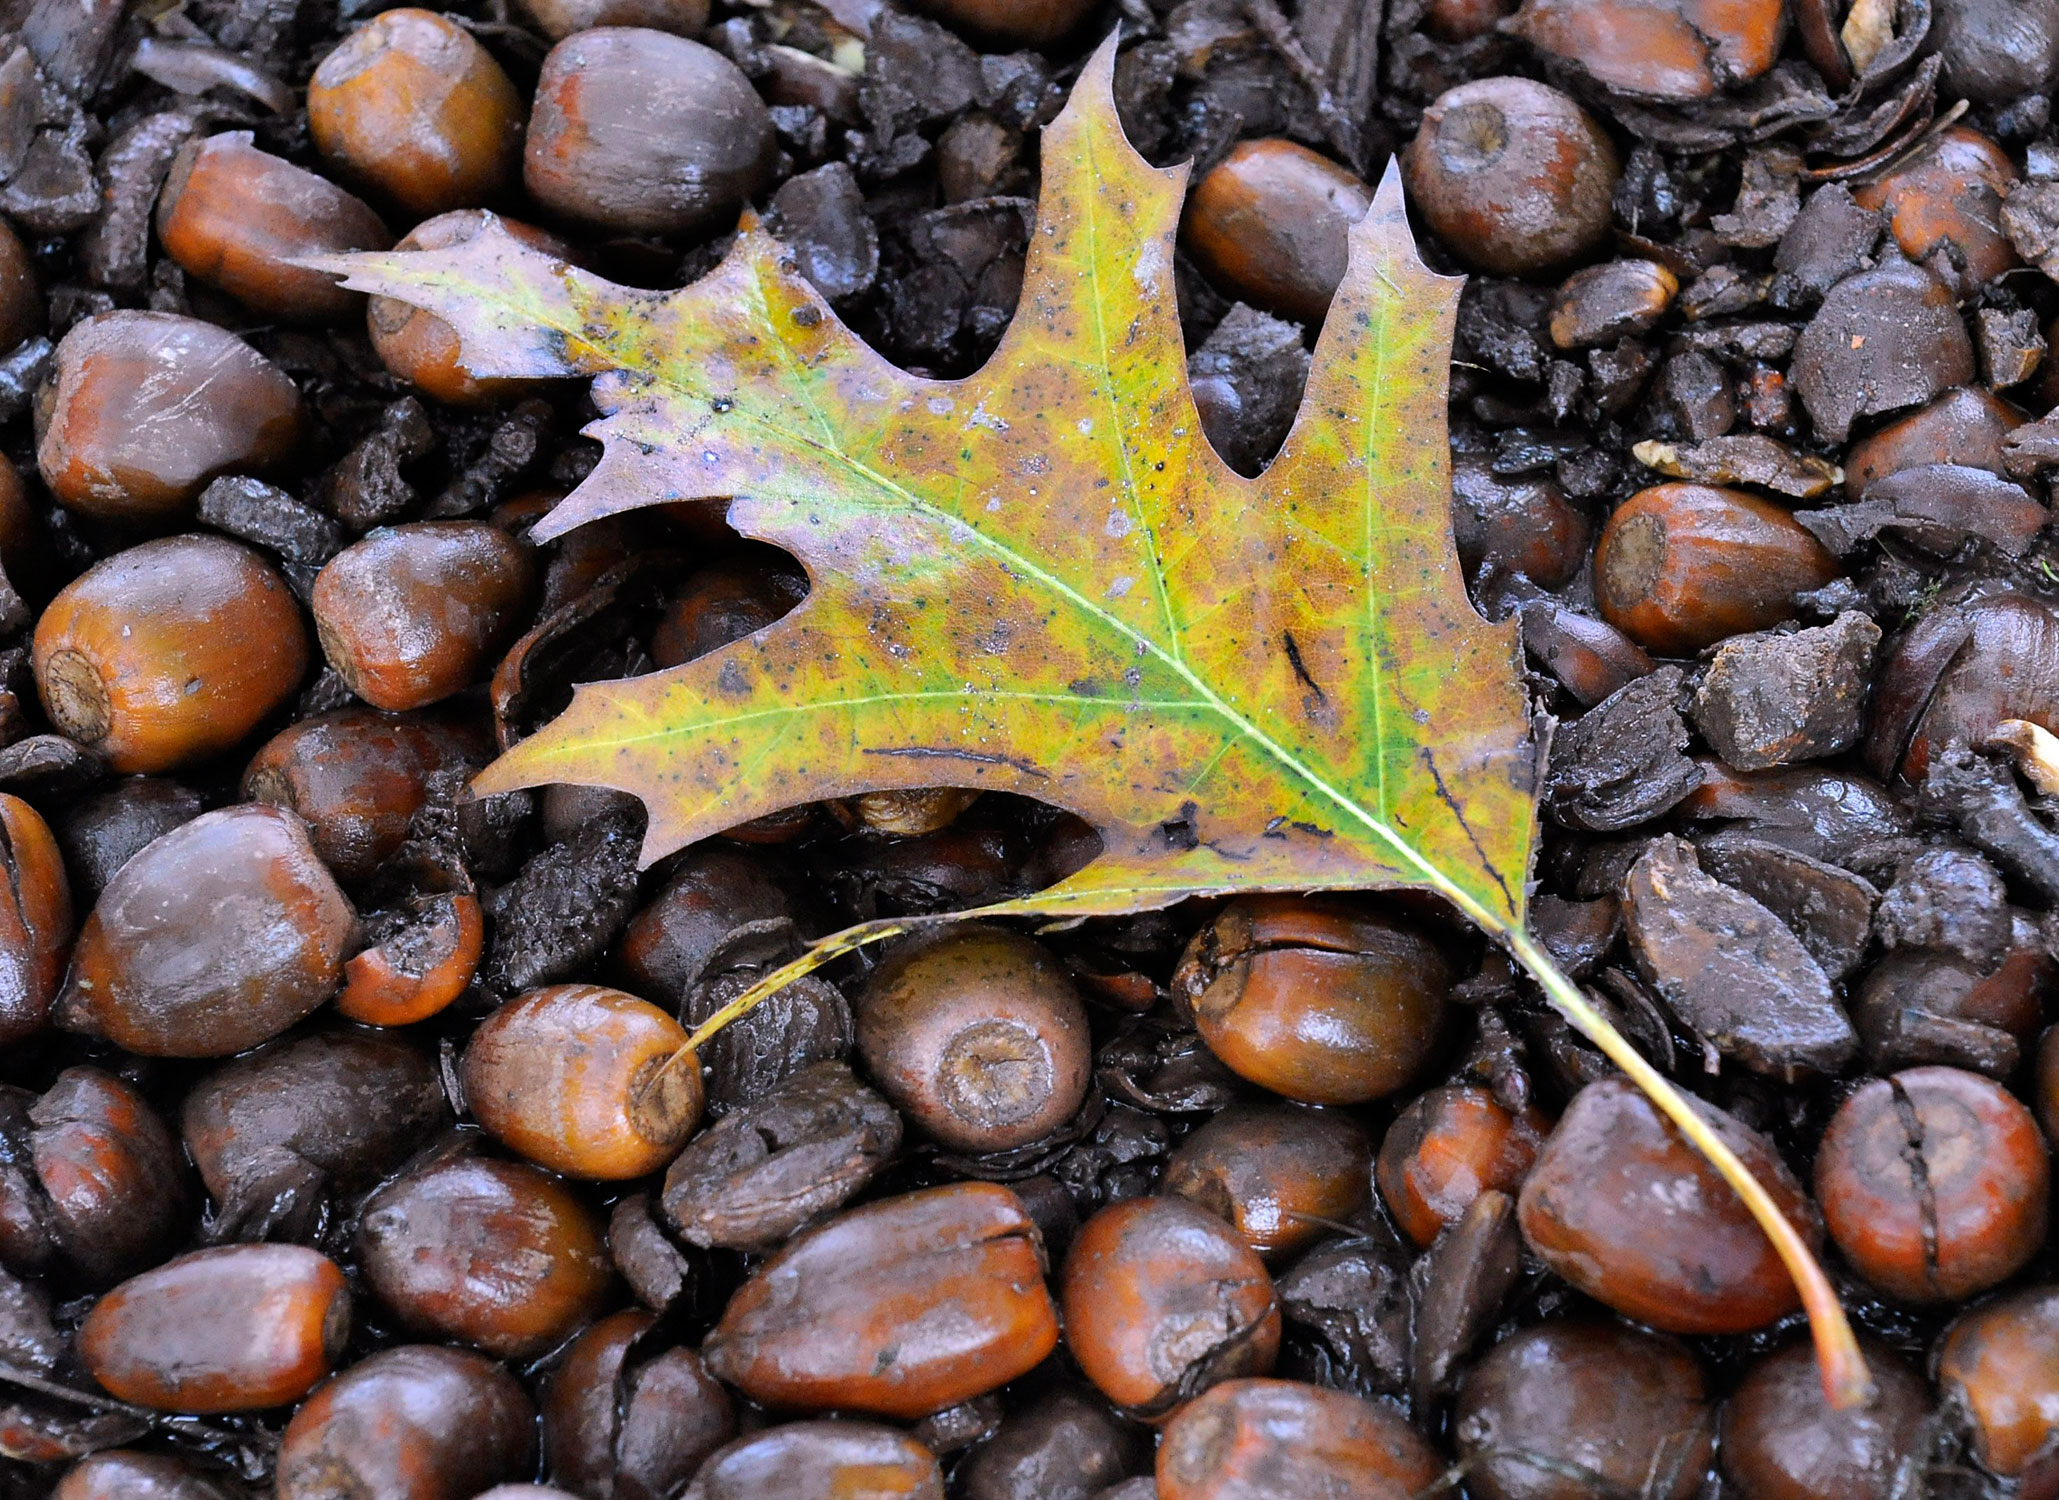 Garden Plot: Why acorns can lead to unwanted weeds and ticks